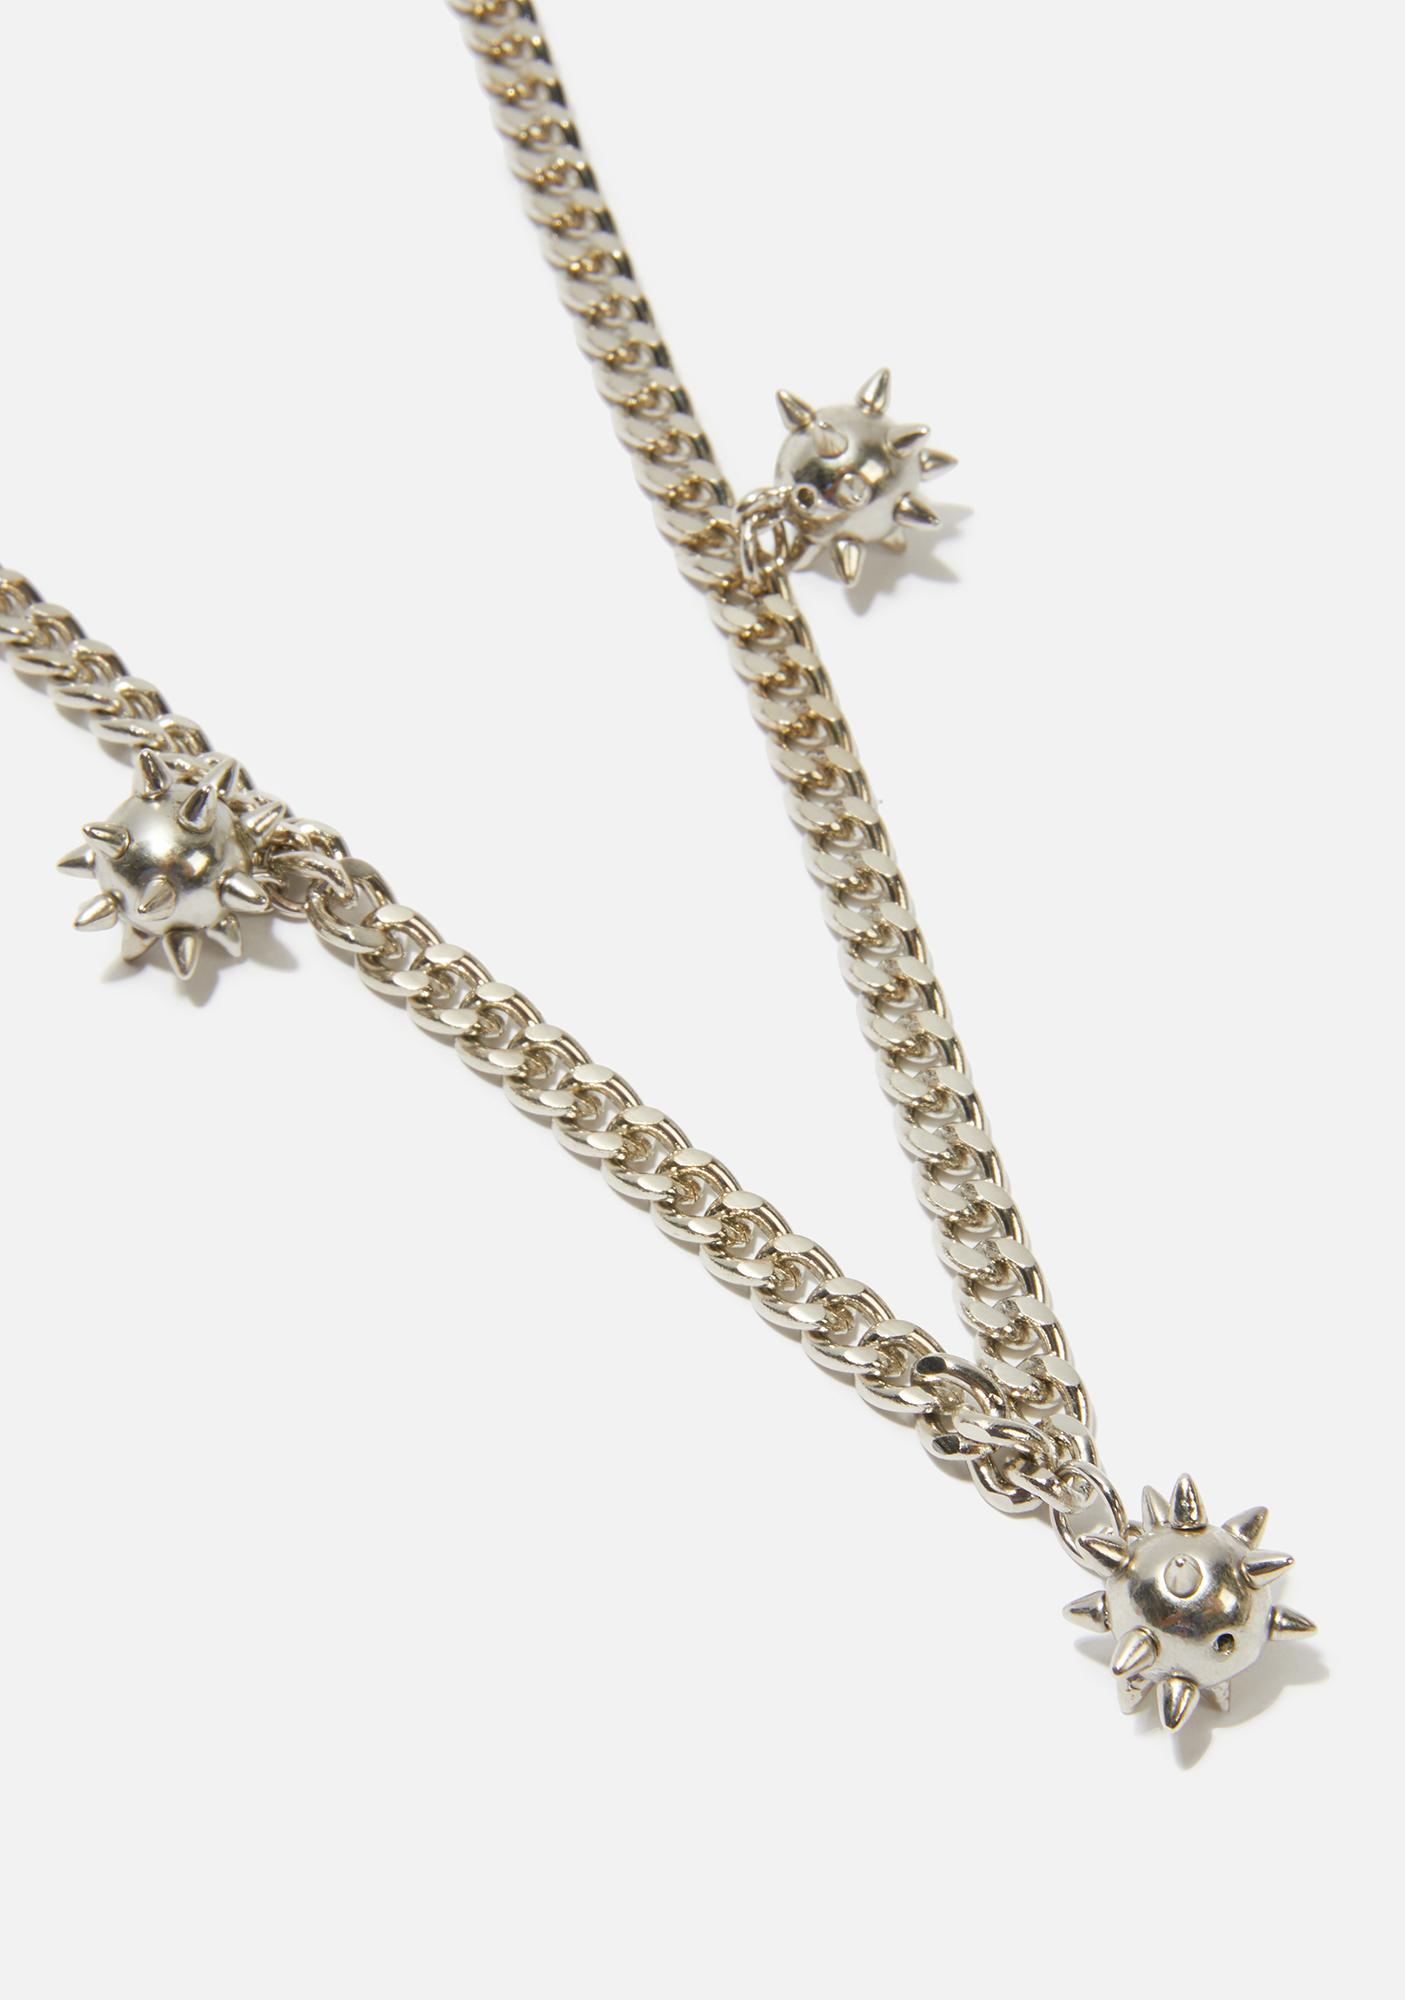 Looking Sharp Chain Necklace